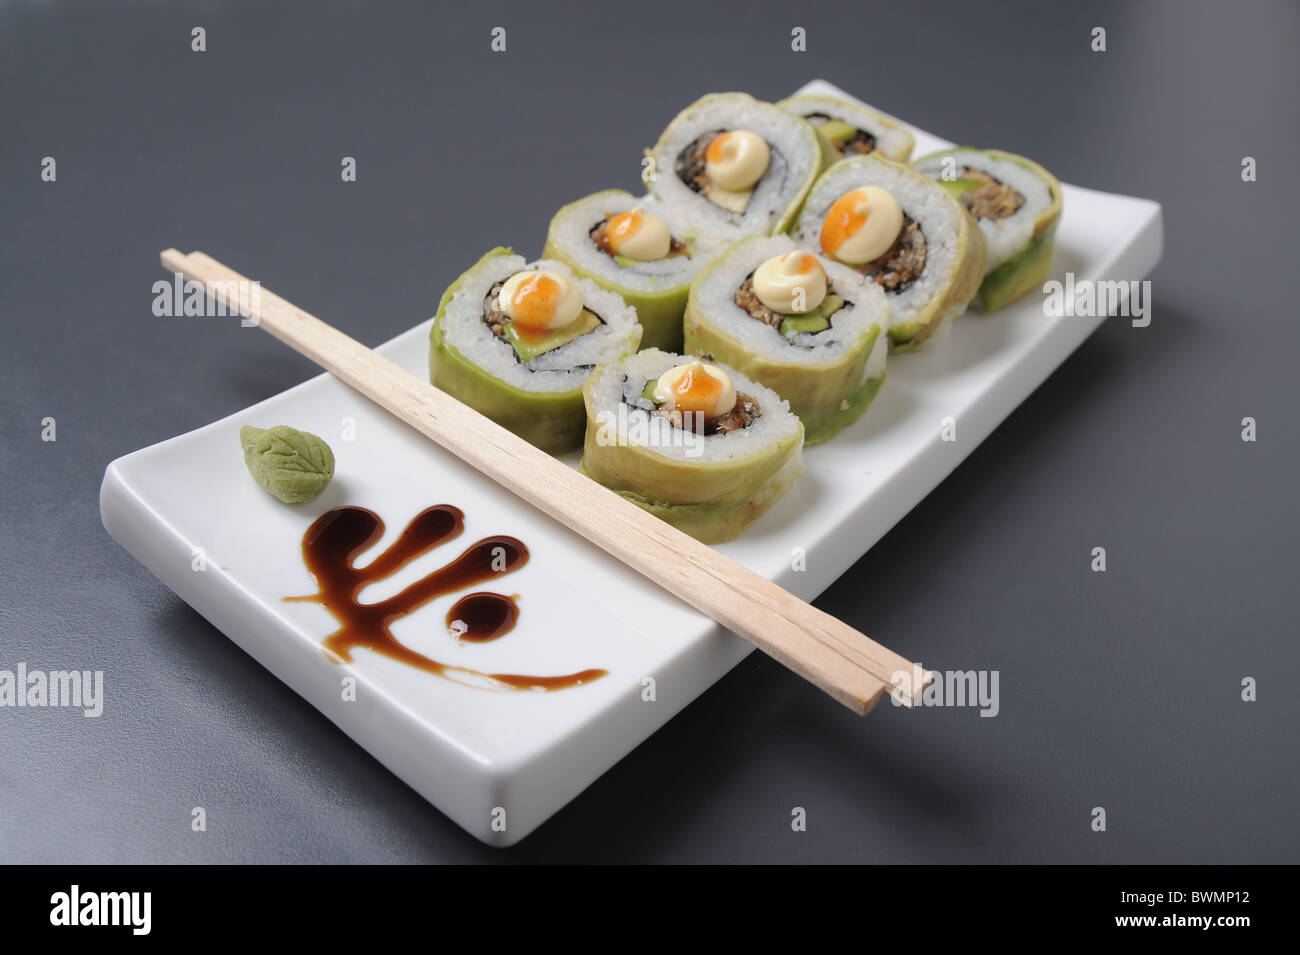 sushi roll stockfotos sushi roll bilder alamy. Black Bedroom Furniture Sets. Home Design Ideas